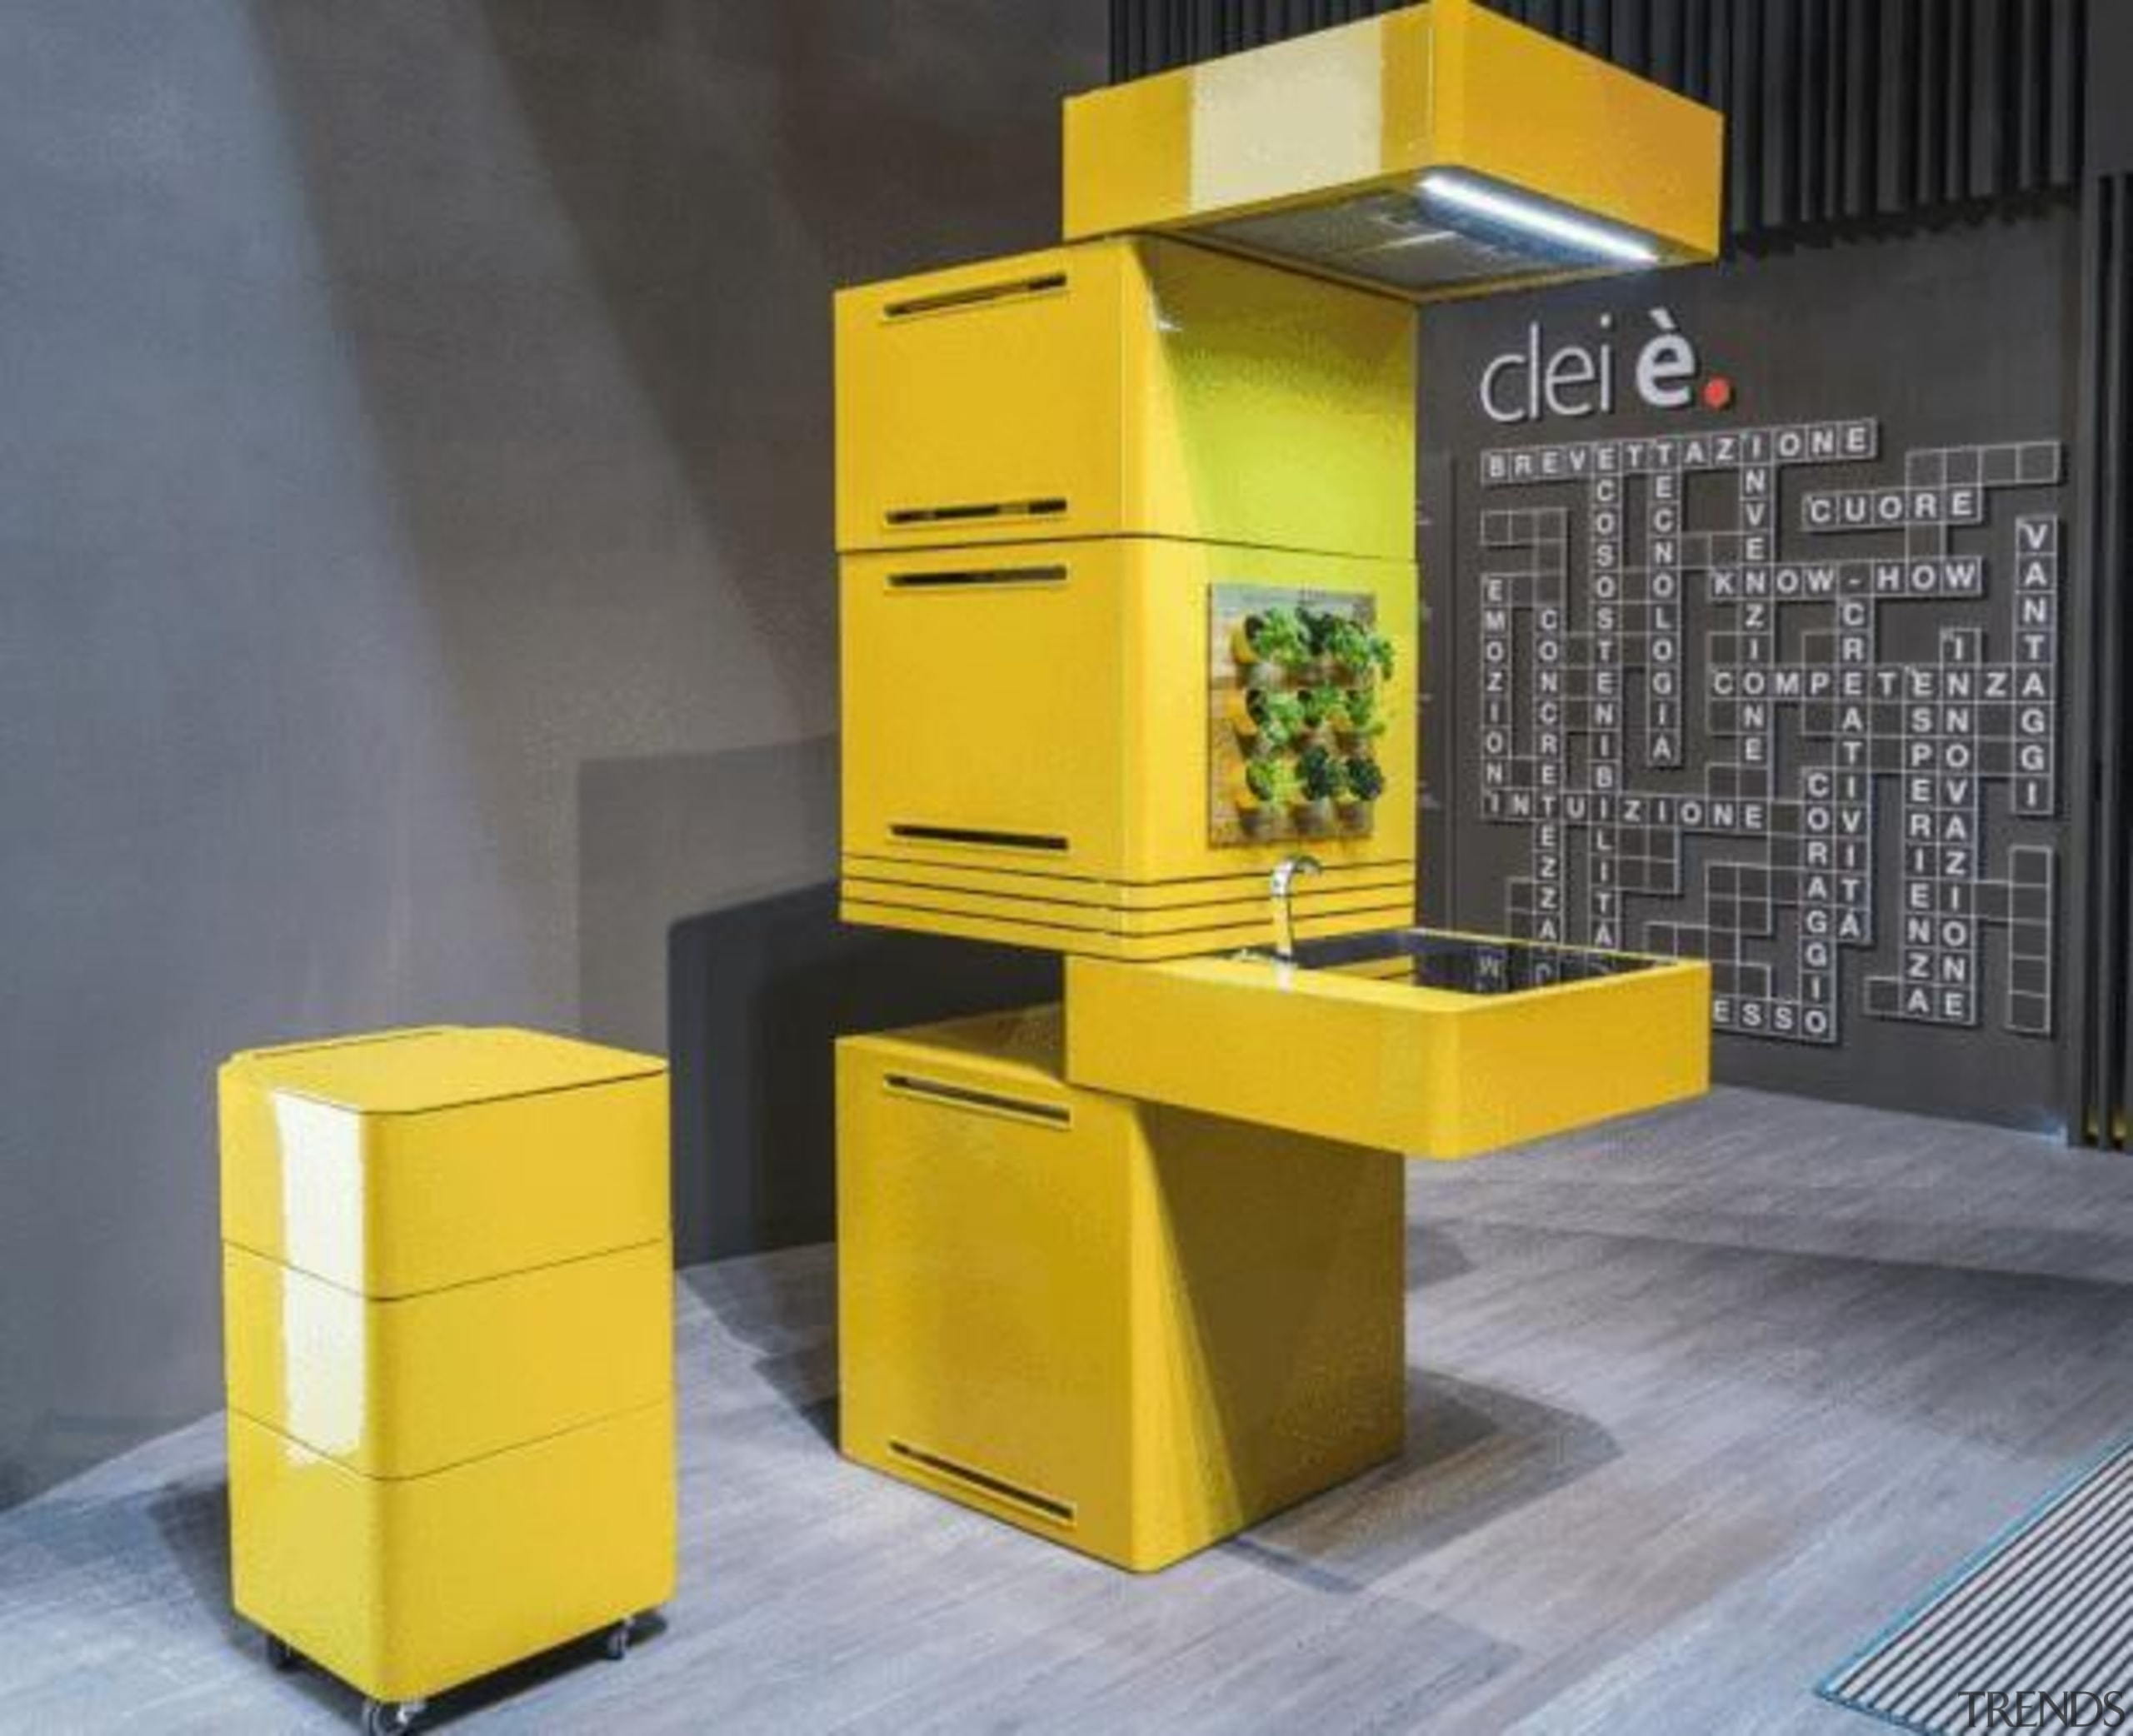 Forget 'bigger is better'; in the eco-conscious yet furniture, product, product design, table, yellow, gray